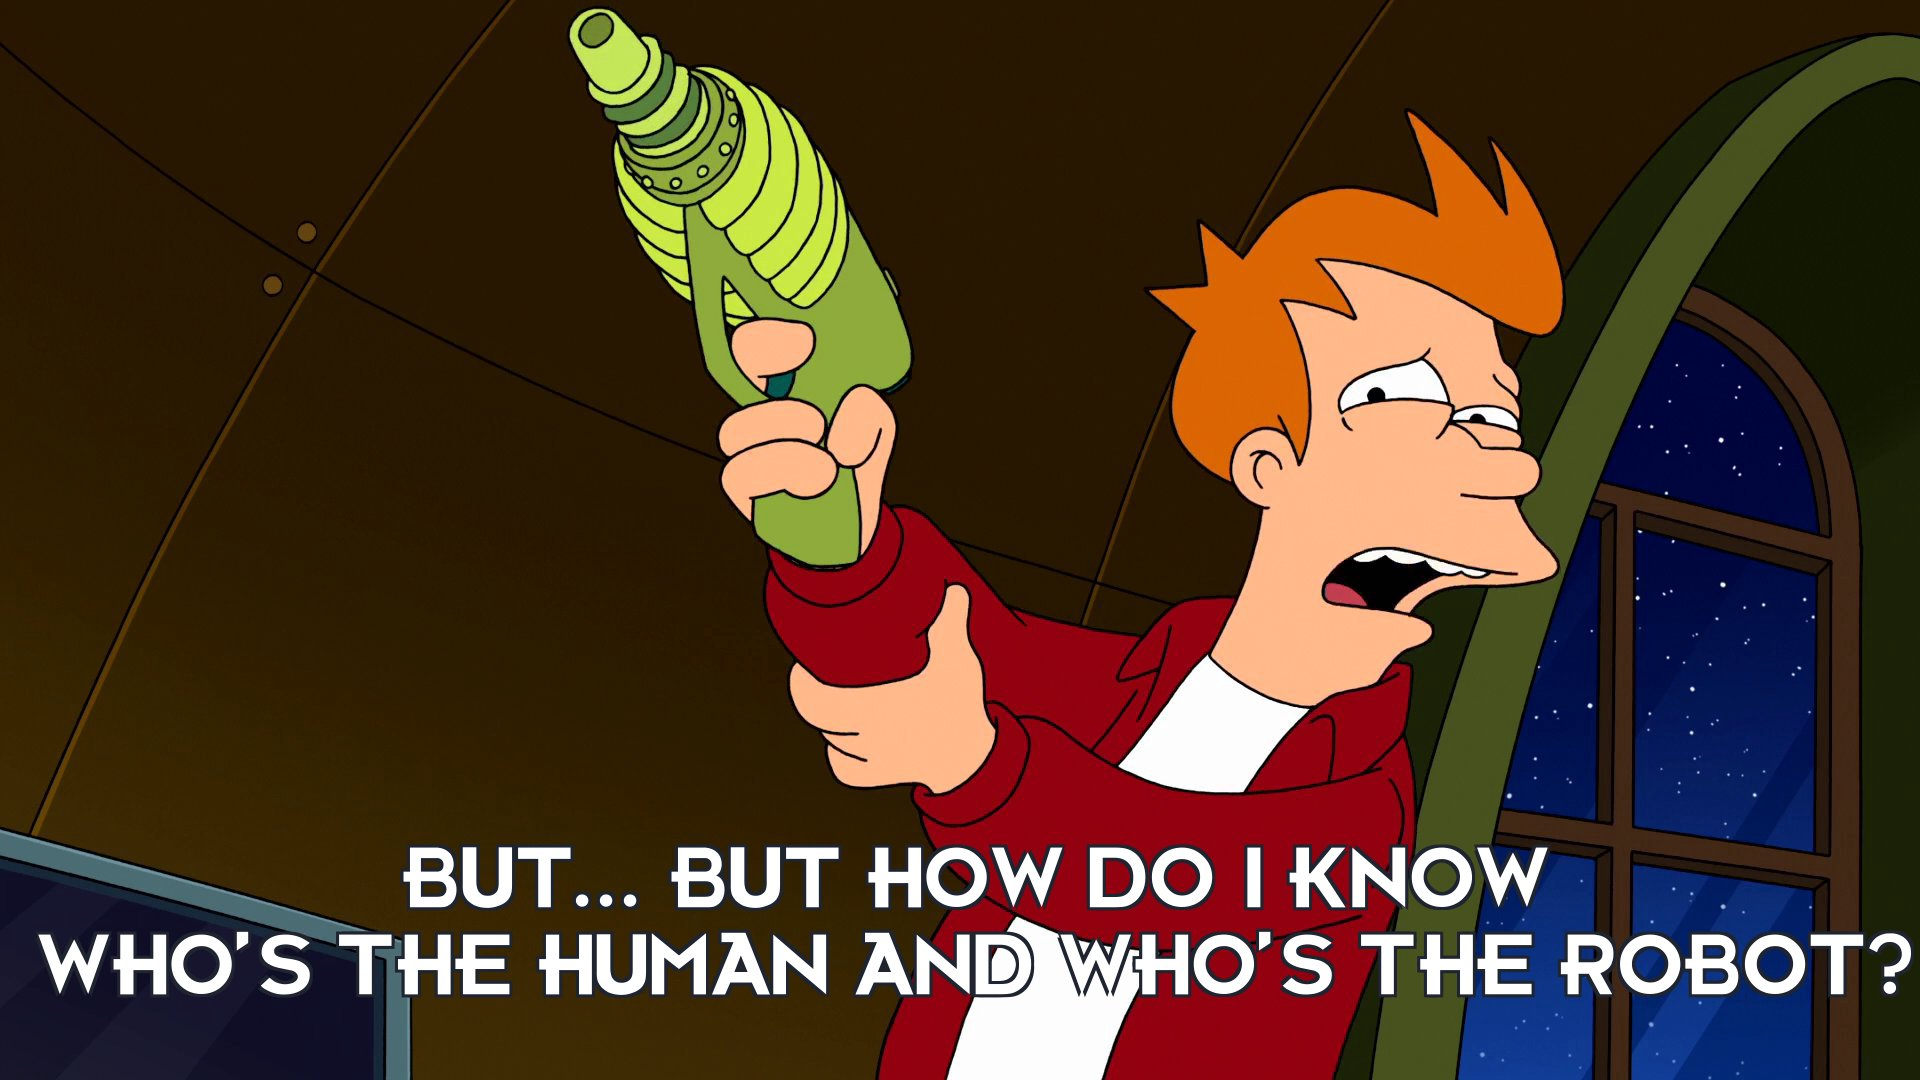 Philip J Fry: But... but how do I know who's the human and who's the robot?